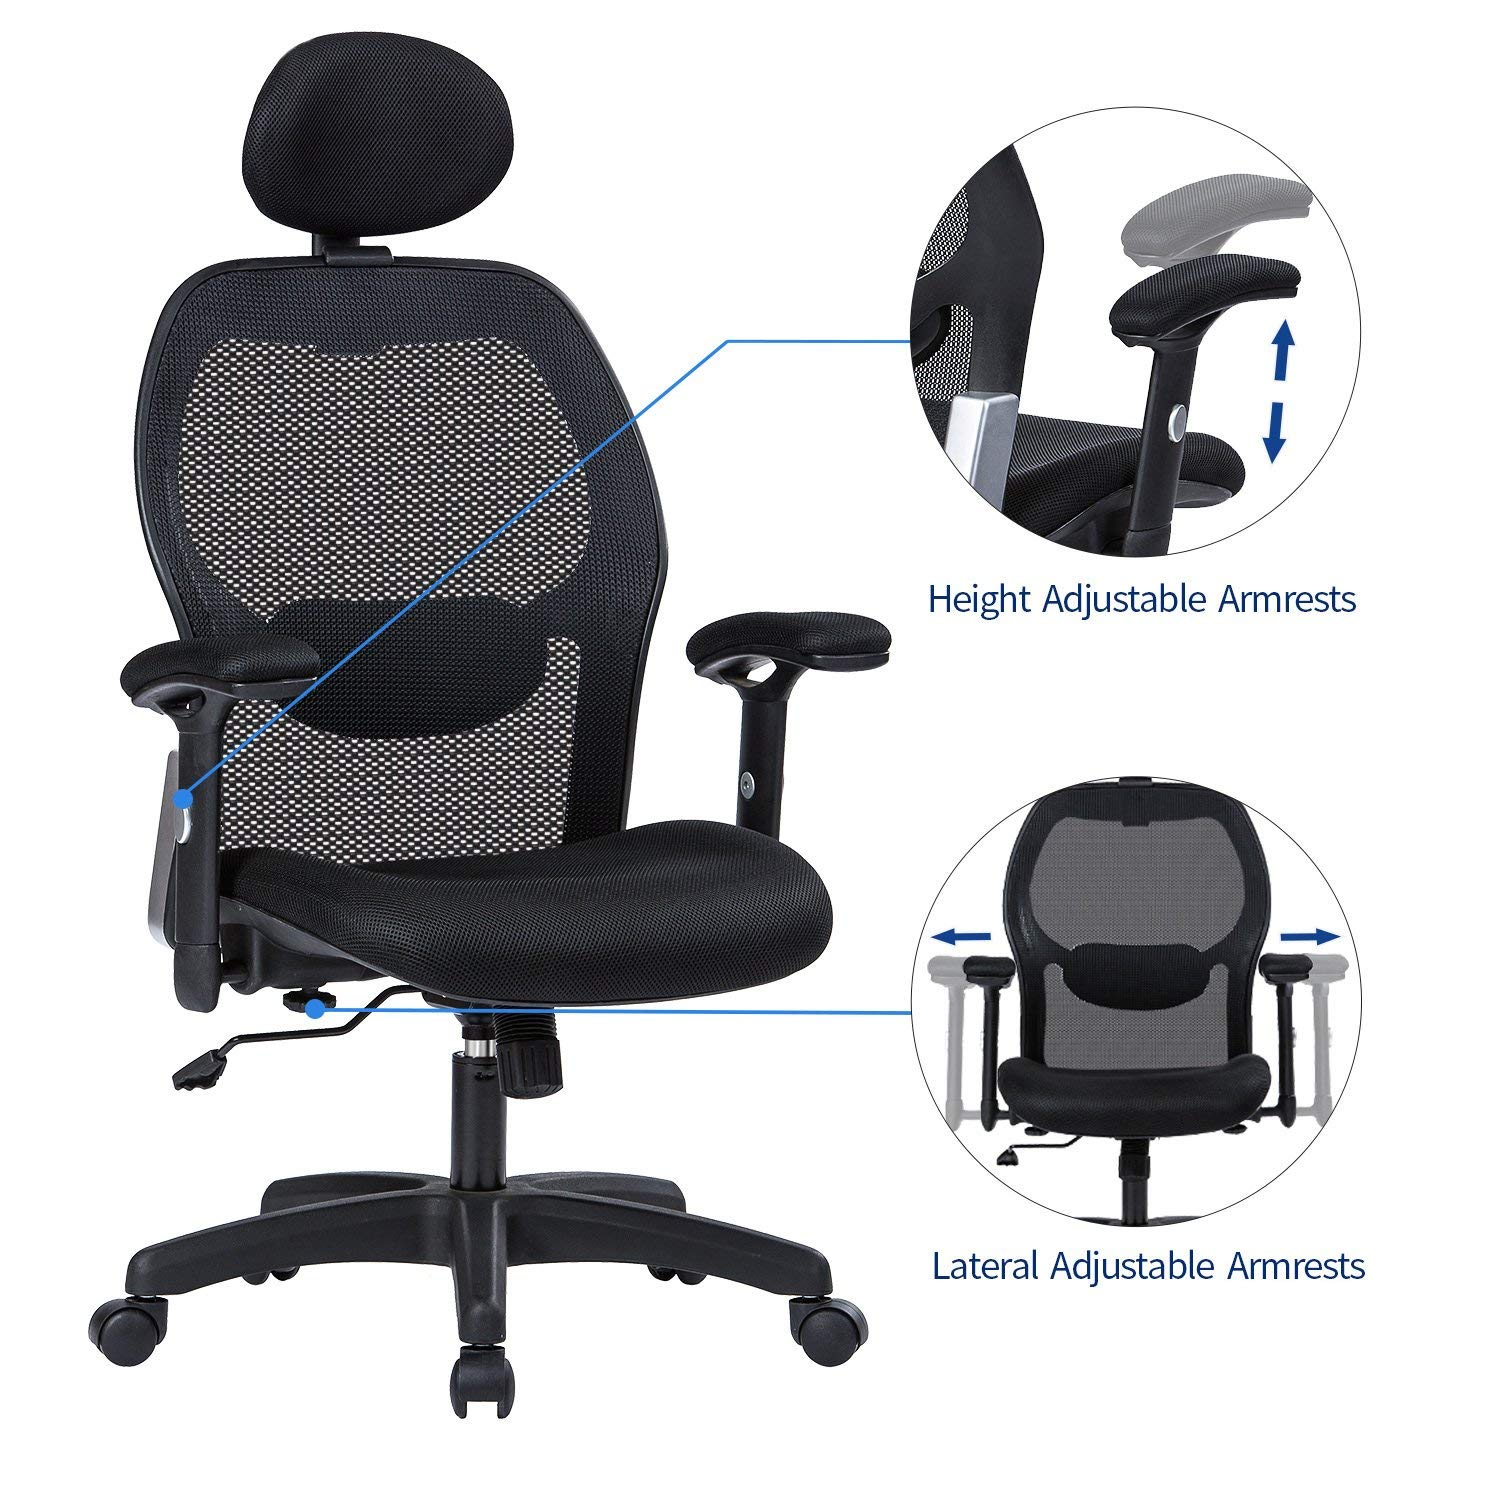 LIANFENG Ergonomic Office Chair, High Back Executive Swivel Computer Desk Chair with Adjustable Armrests and Headrest, Back Lumbar Support, Black by LIANFENG (Image #4)